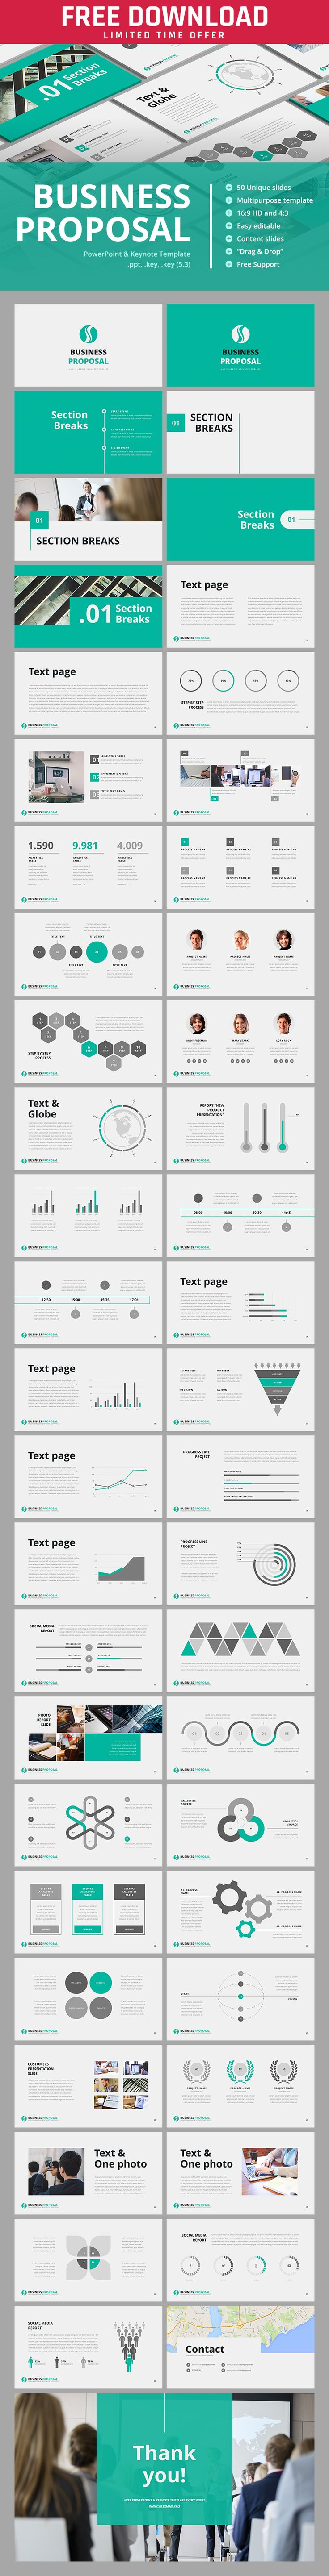 Best 25 powerpoint template free ideas on pinterest free make them the business proposal they will never refuse more keynote templates toneelgroepblik Image collections